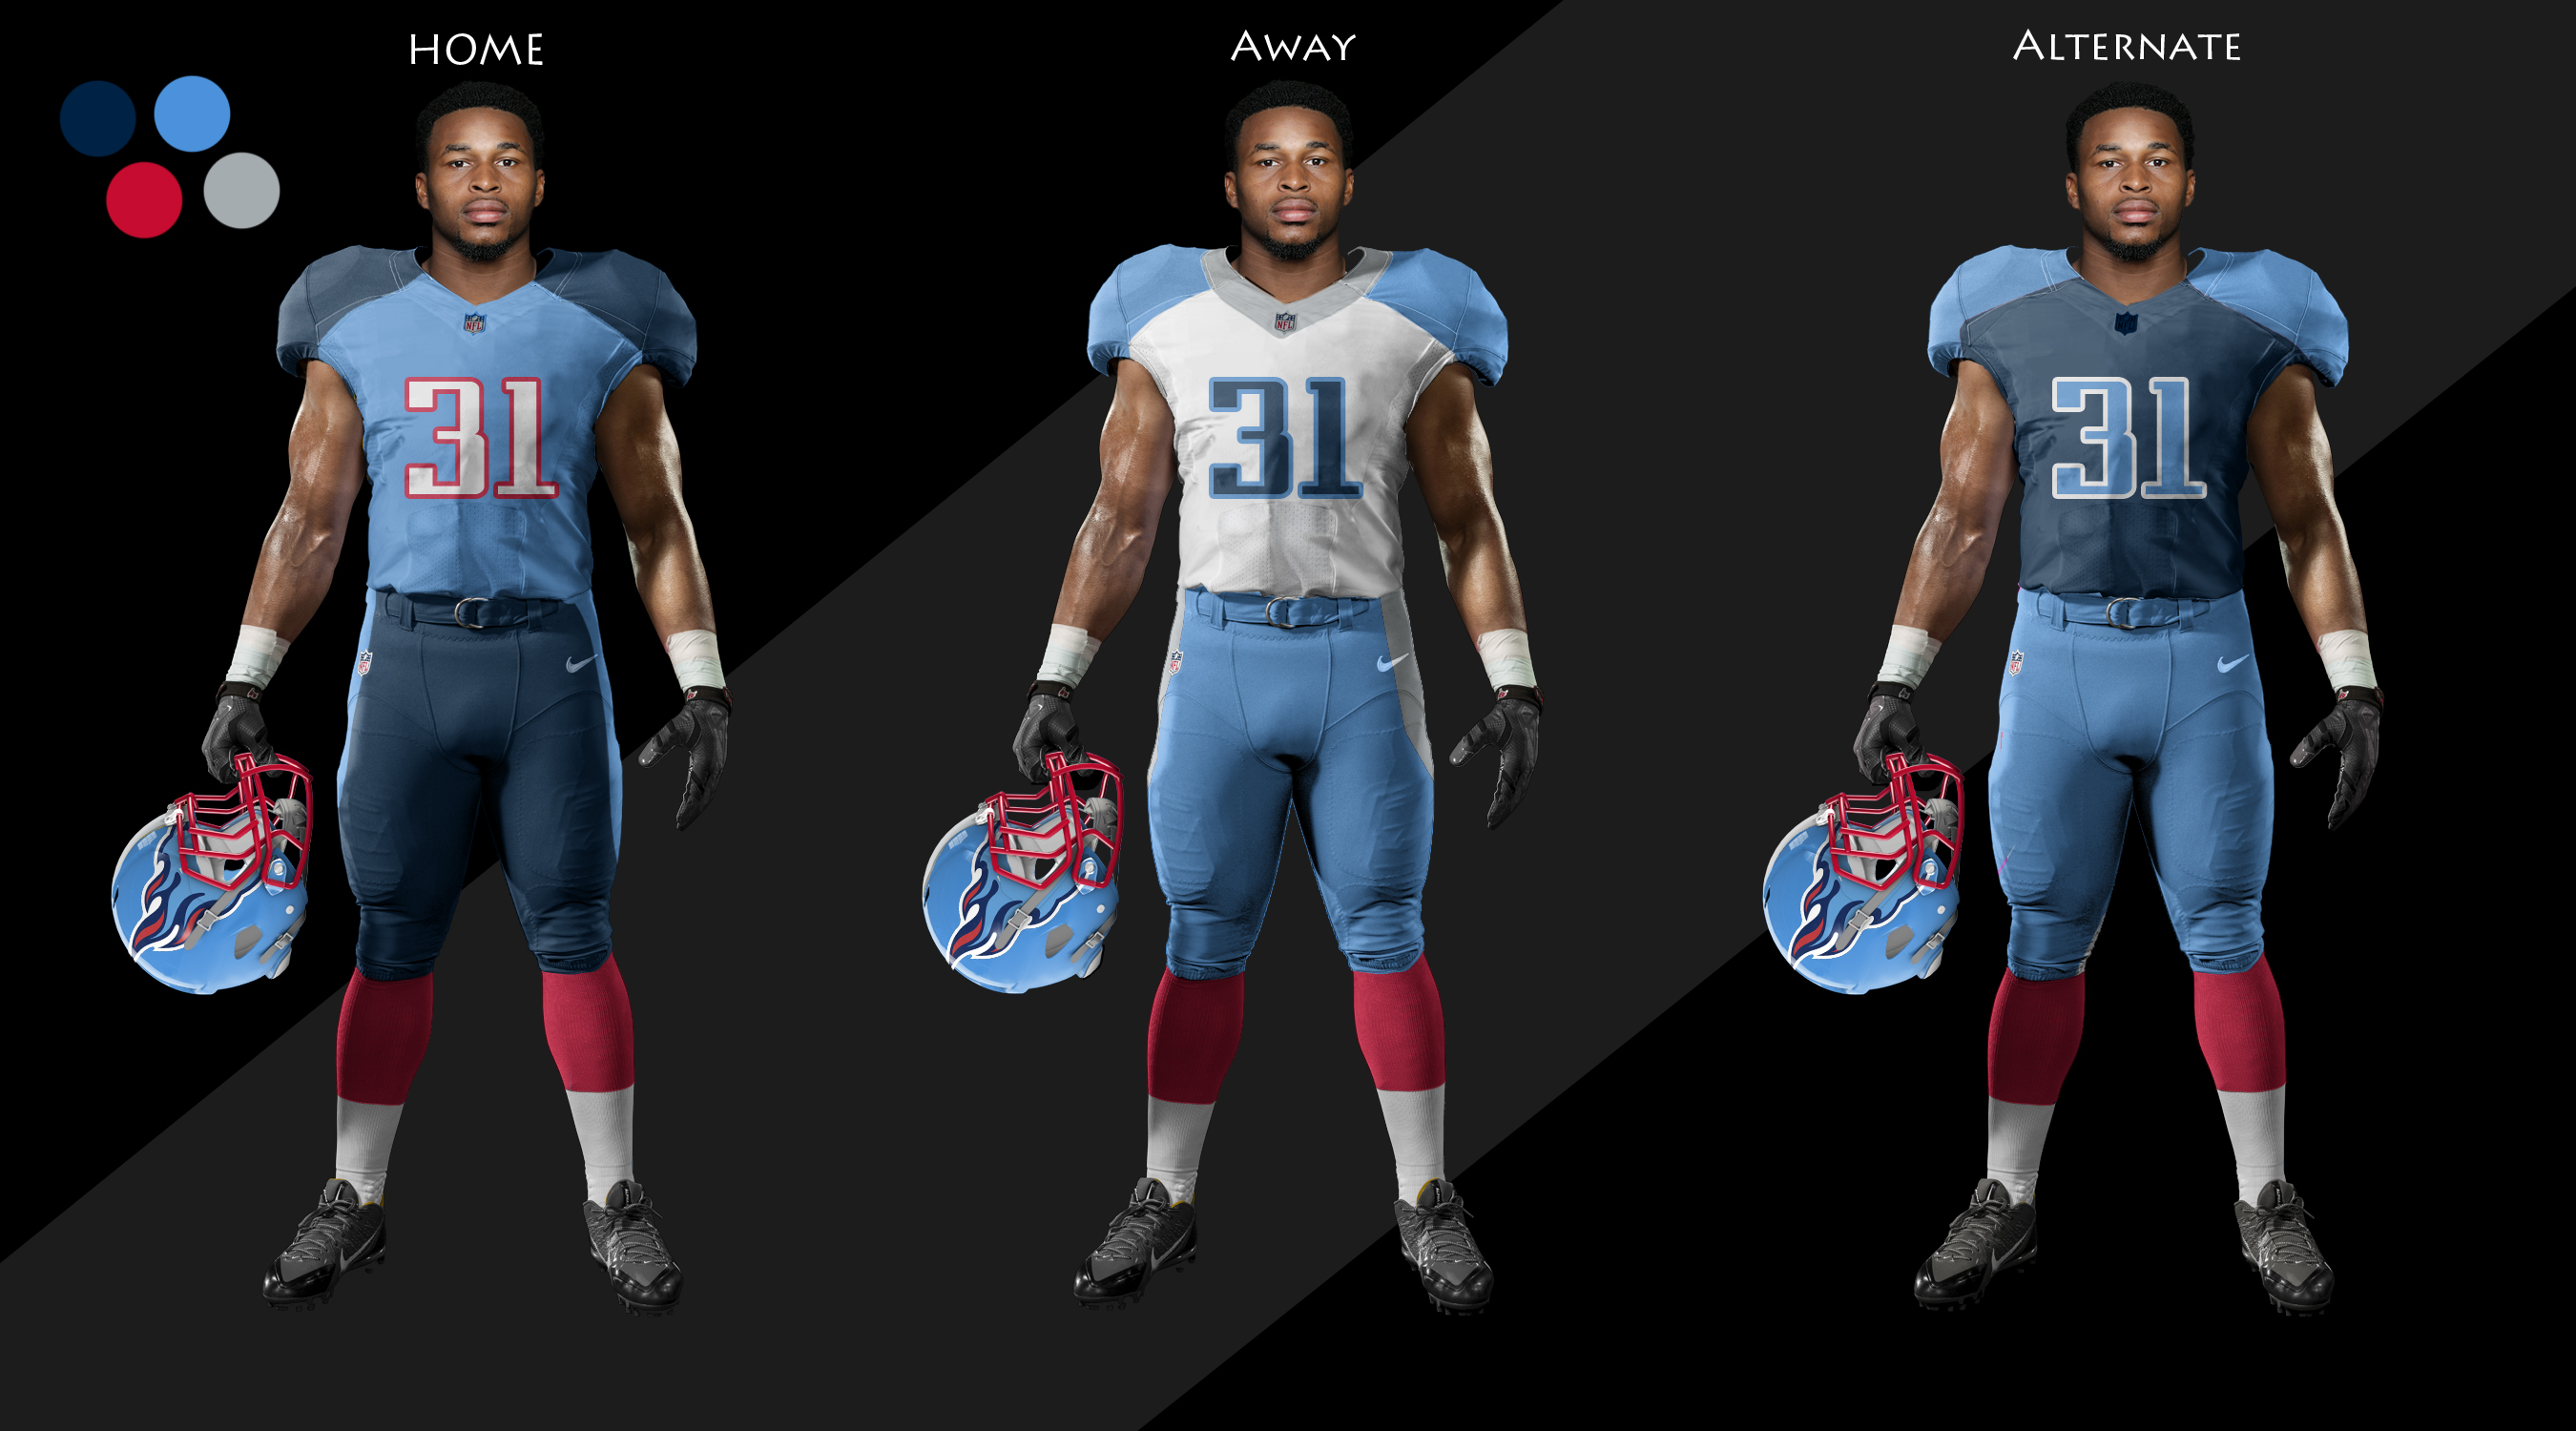 b4fb6fa58 I call this one the basic. I like heavy shoulder pads. I changed up the  main uniform to be primary light blue